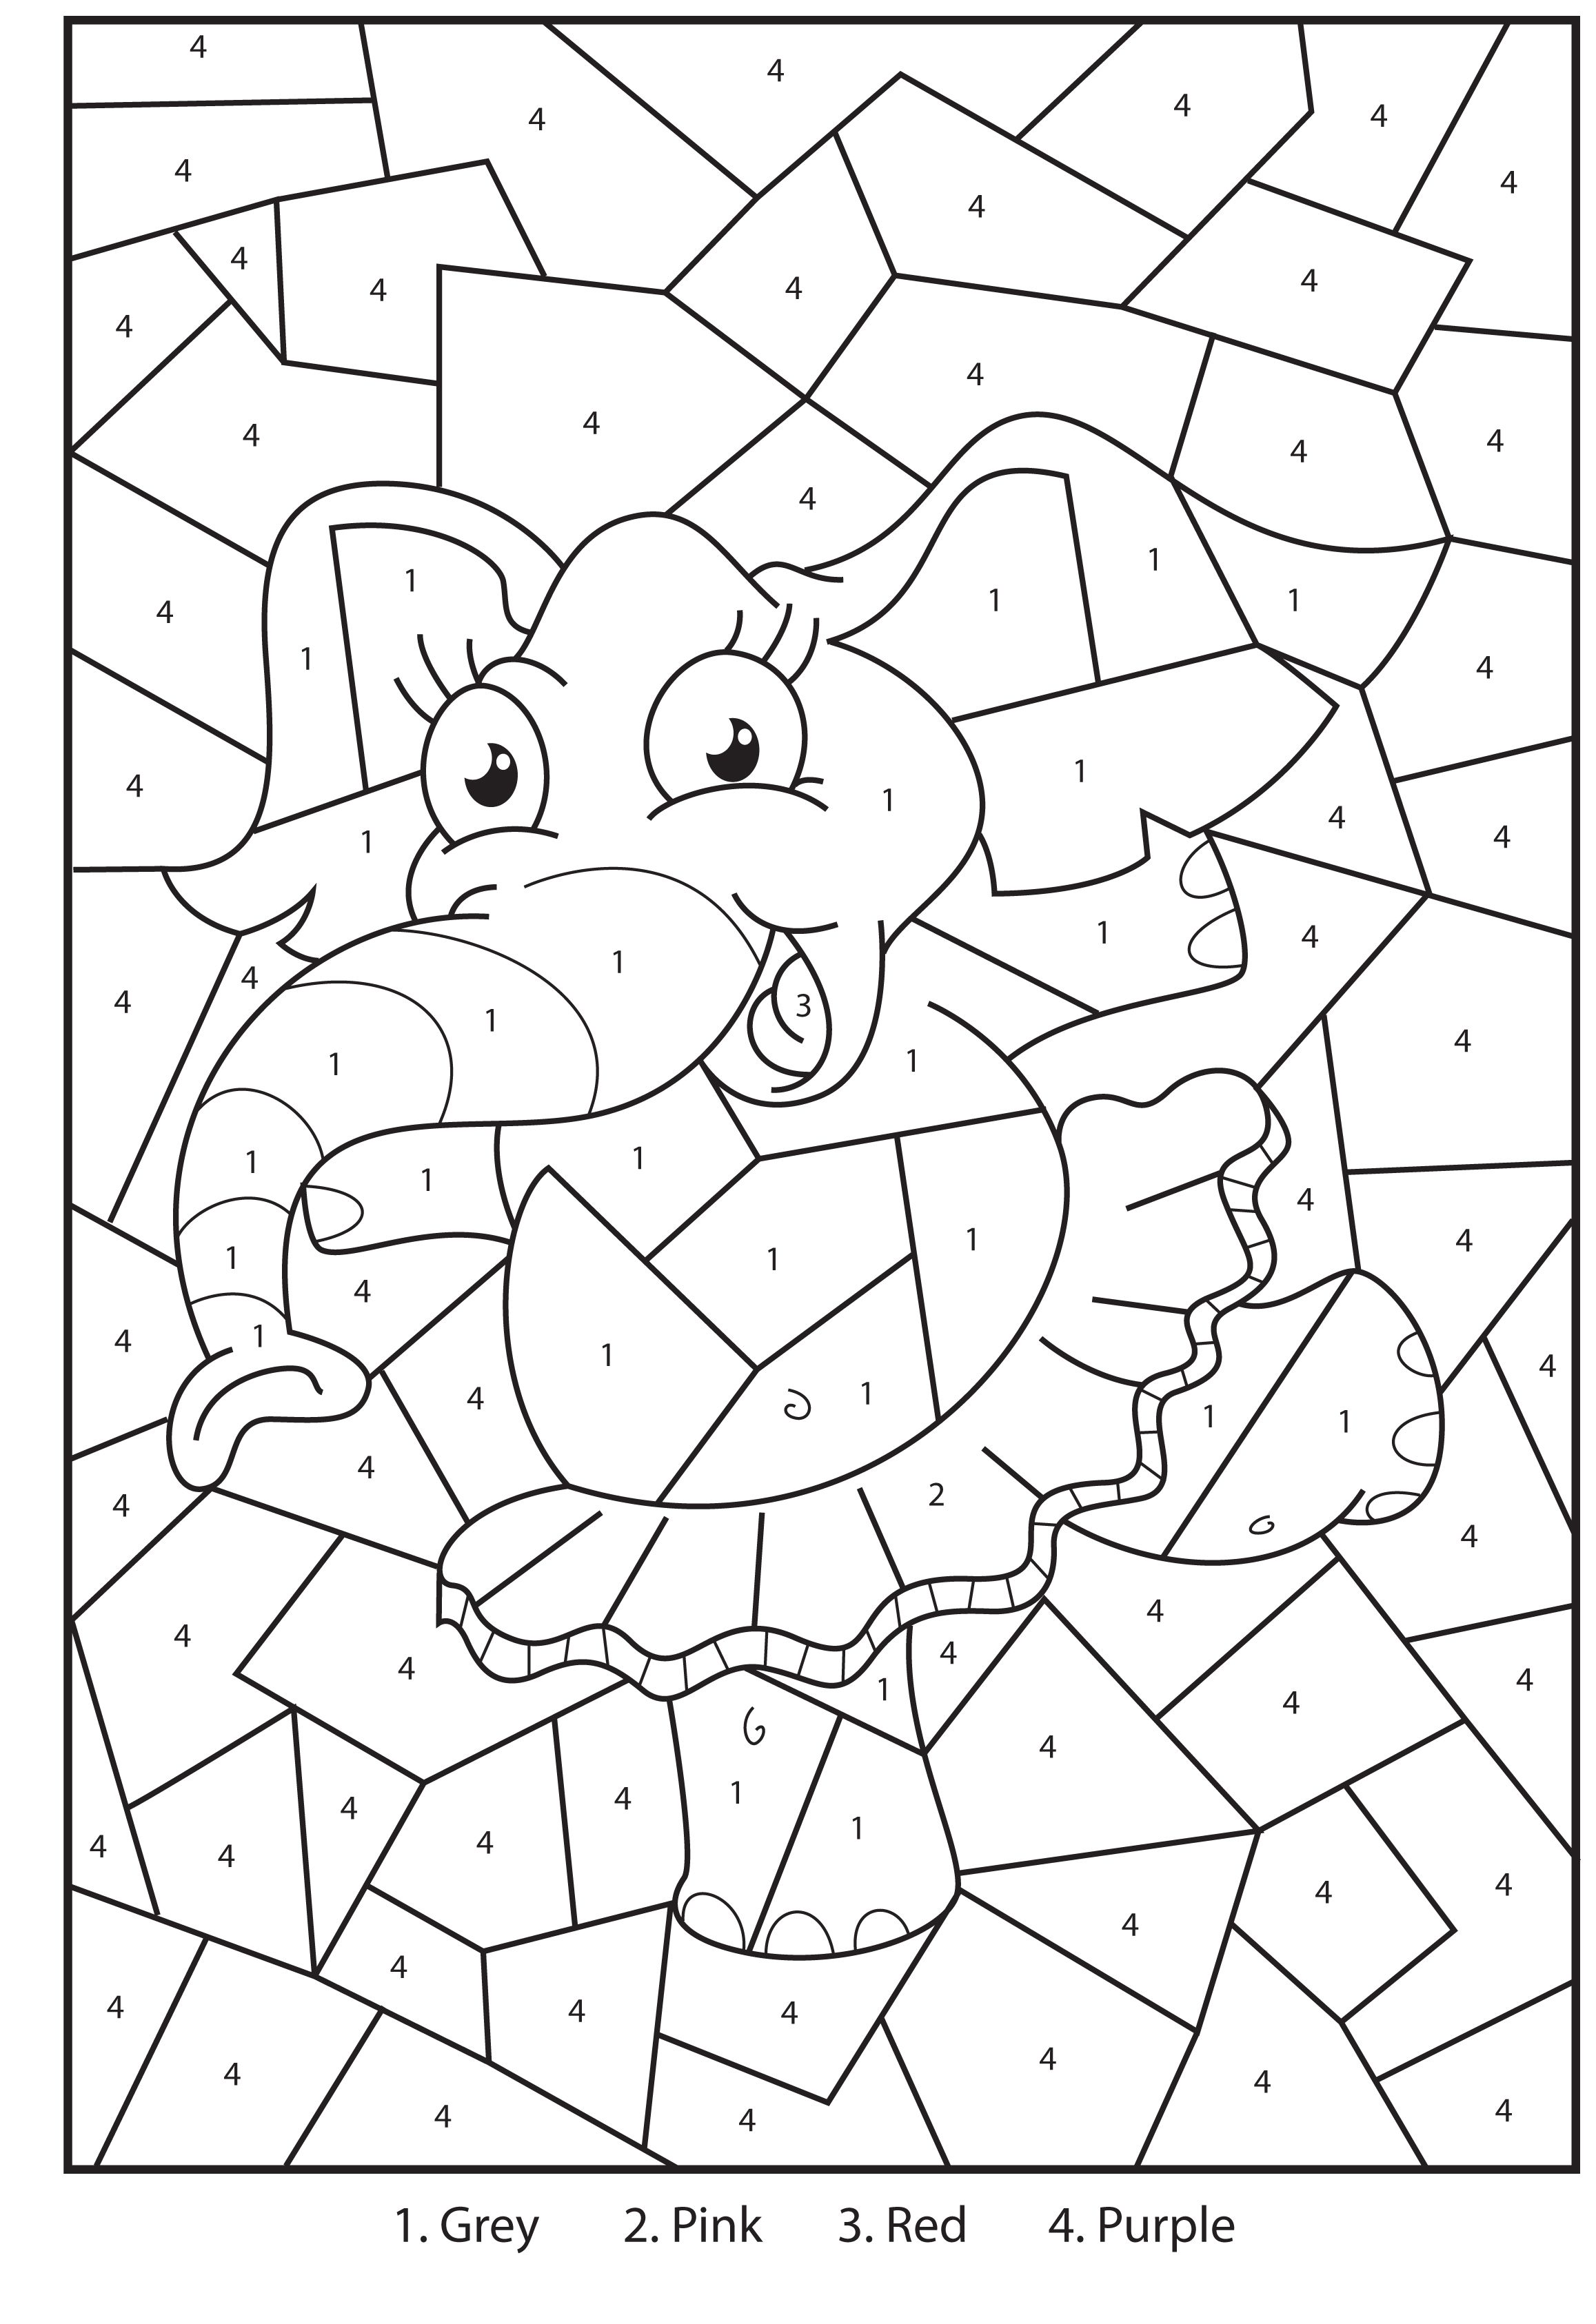 Free printable elephant colour by numbers activity for for Printable color by number pages for kids